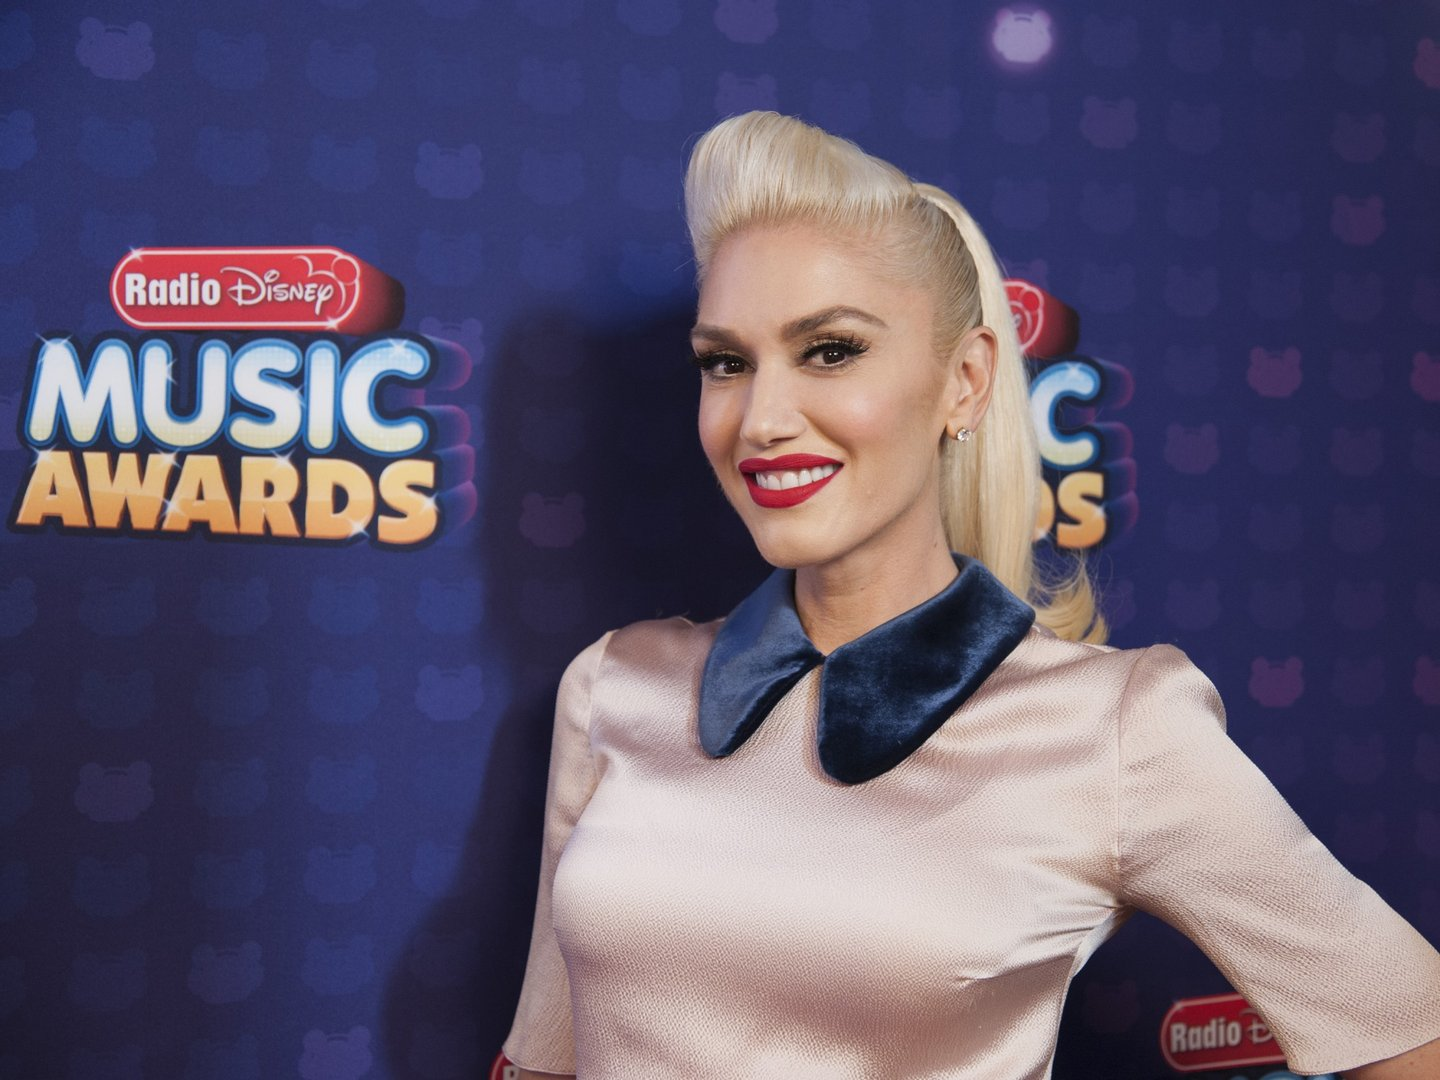 """DISNEY CHANNEL PRESENTS THE RADIO DISNEY MUSIC AWARDS - Entertainment's brightest young stars turned out for the 2016 Radio Disney Music Awards (RDMA), music's biggest event for families, at Microsoft Theater in Los Angeles on Saturday, April 30. """"Disney Channel Presents the 2016 Radio Disney Music Awards"""" airs Sunday, May 1 (7:00 p.m. EDT). (Image Group LA /Disney Channel) GWEN STEFANI"""